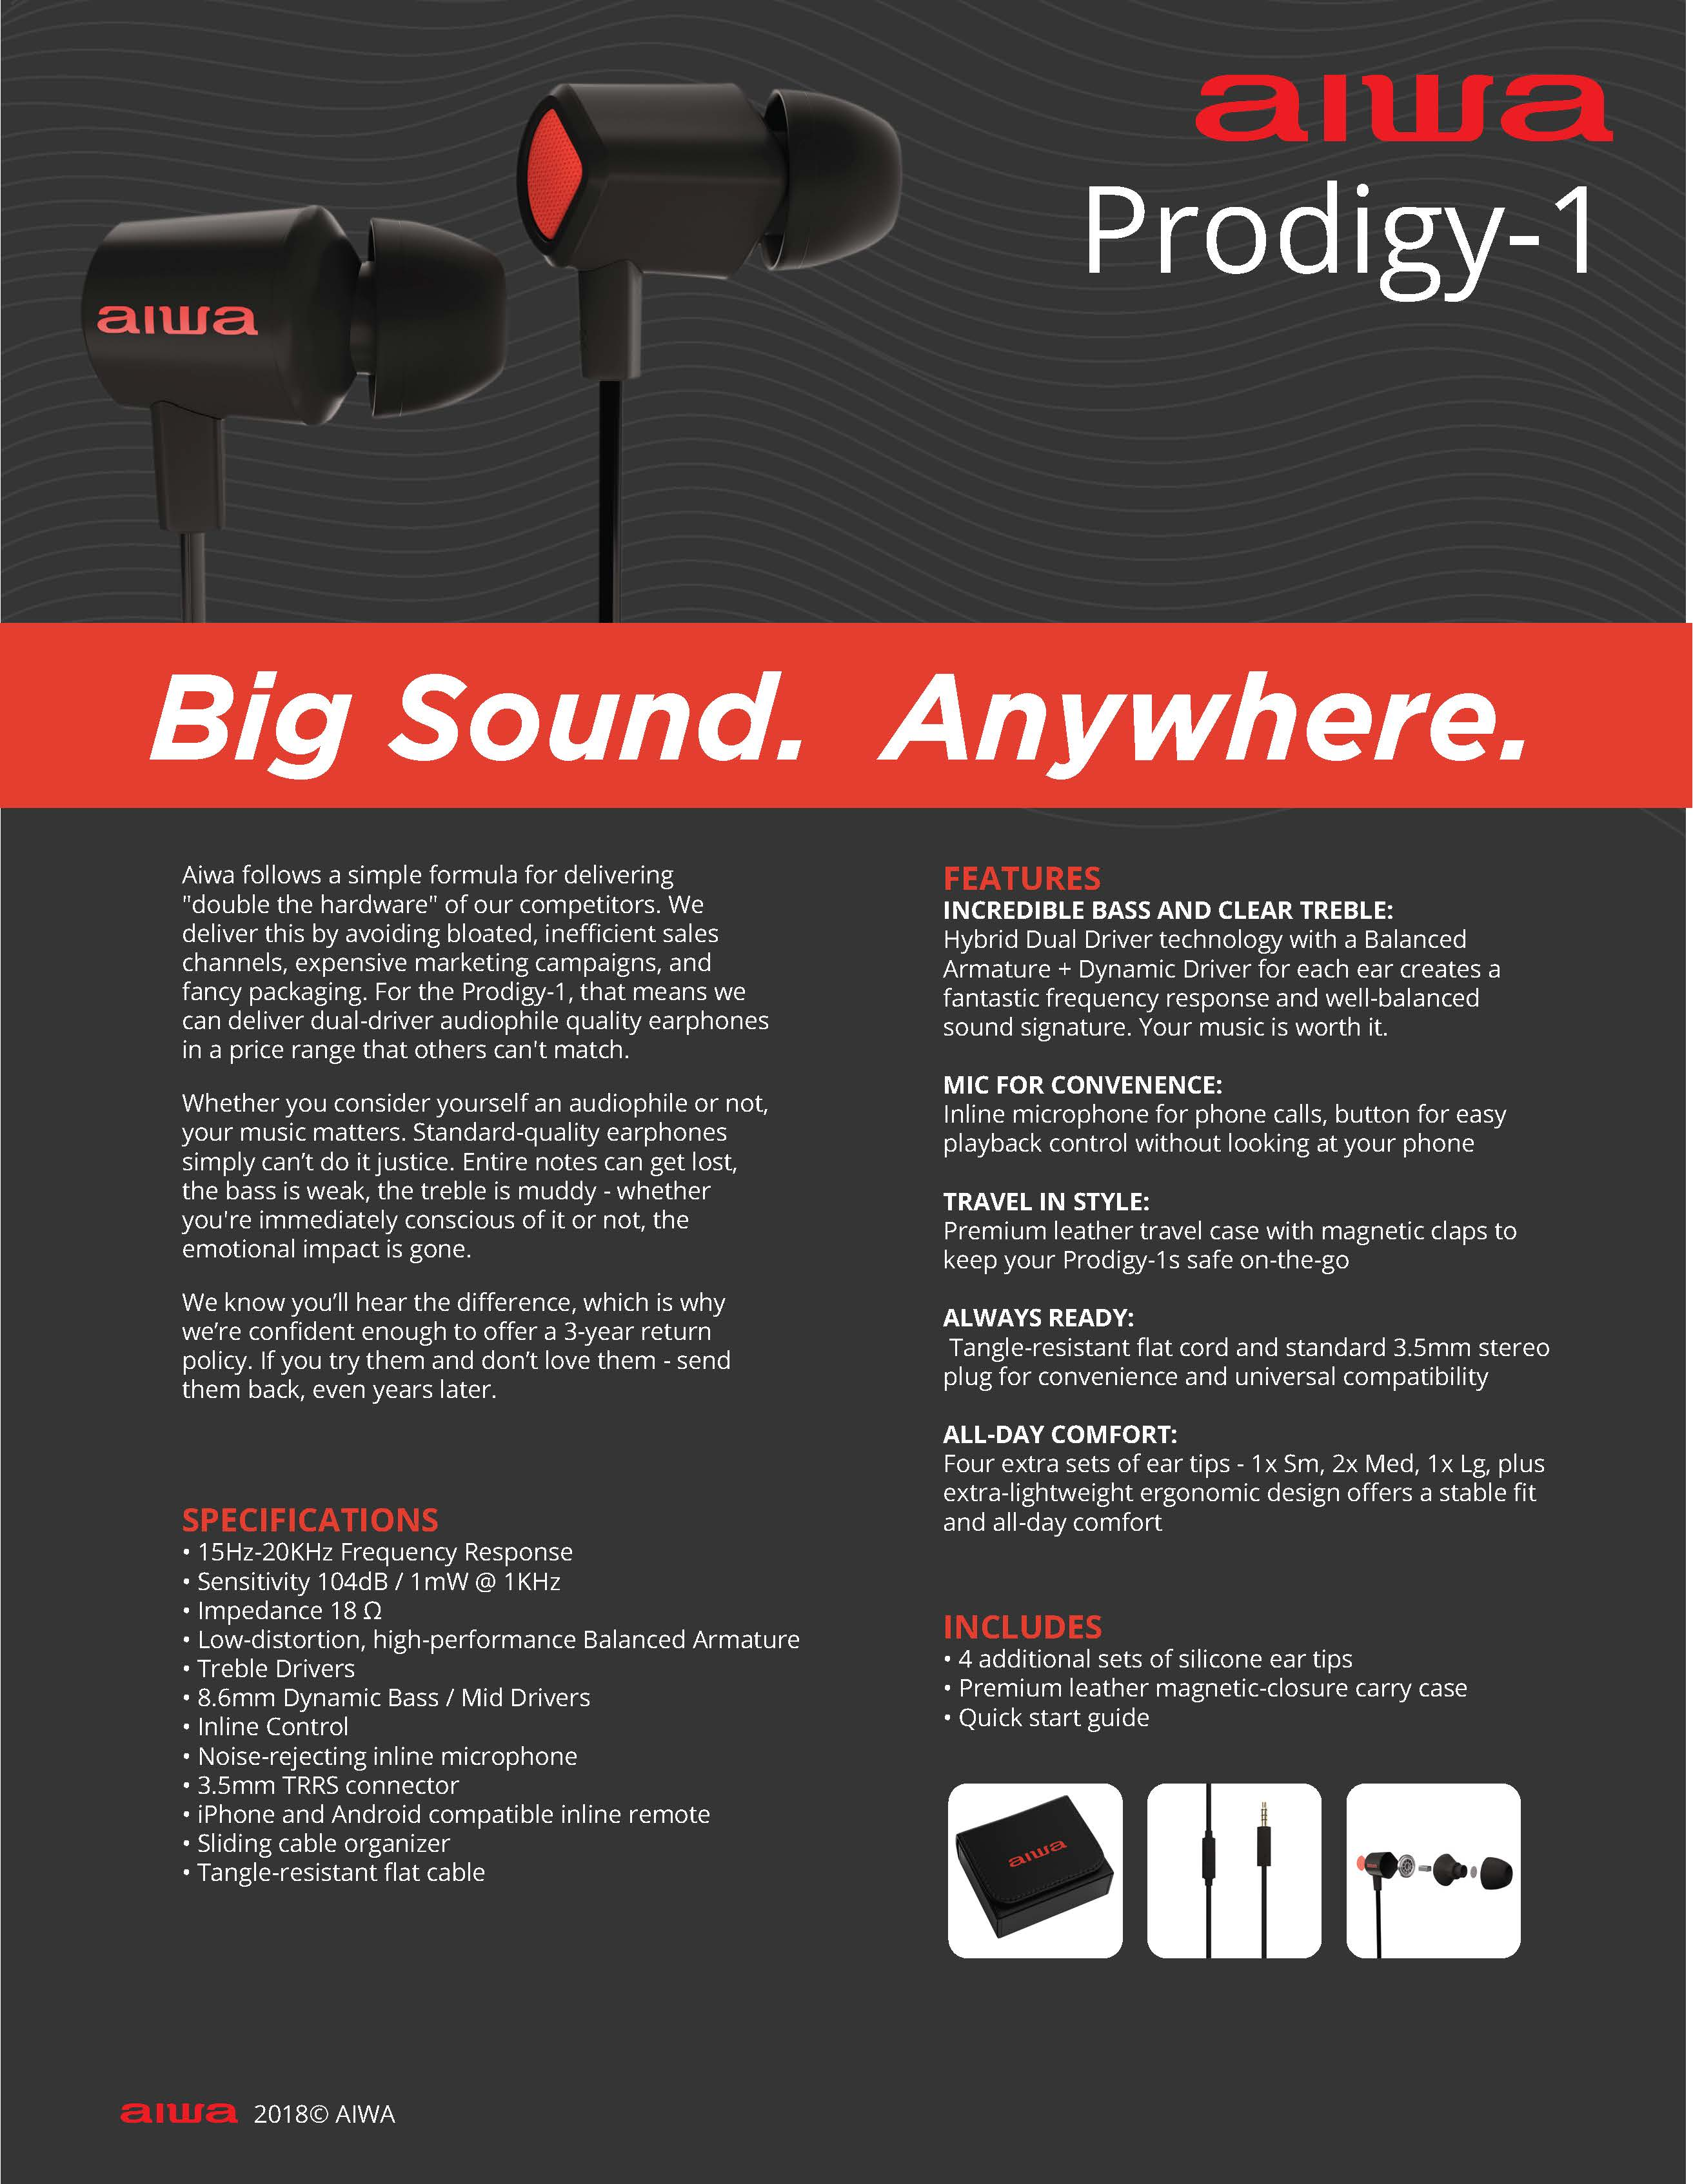 aiwa prodigy-1 sale sheet